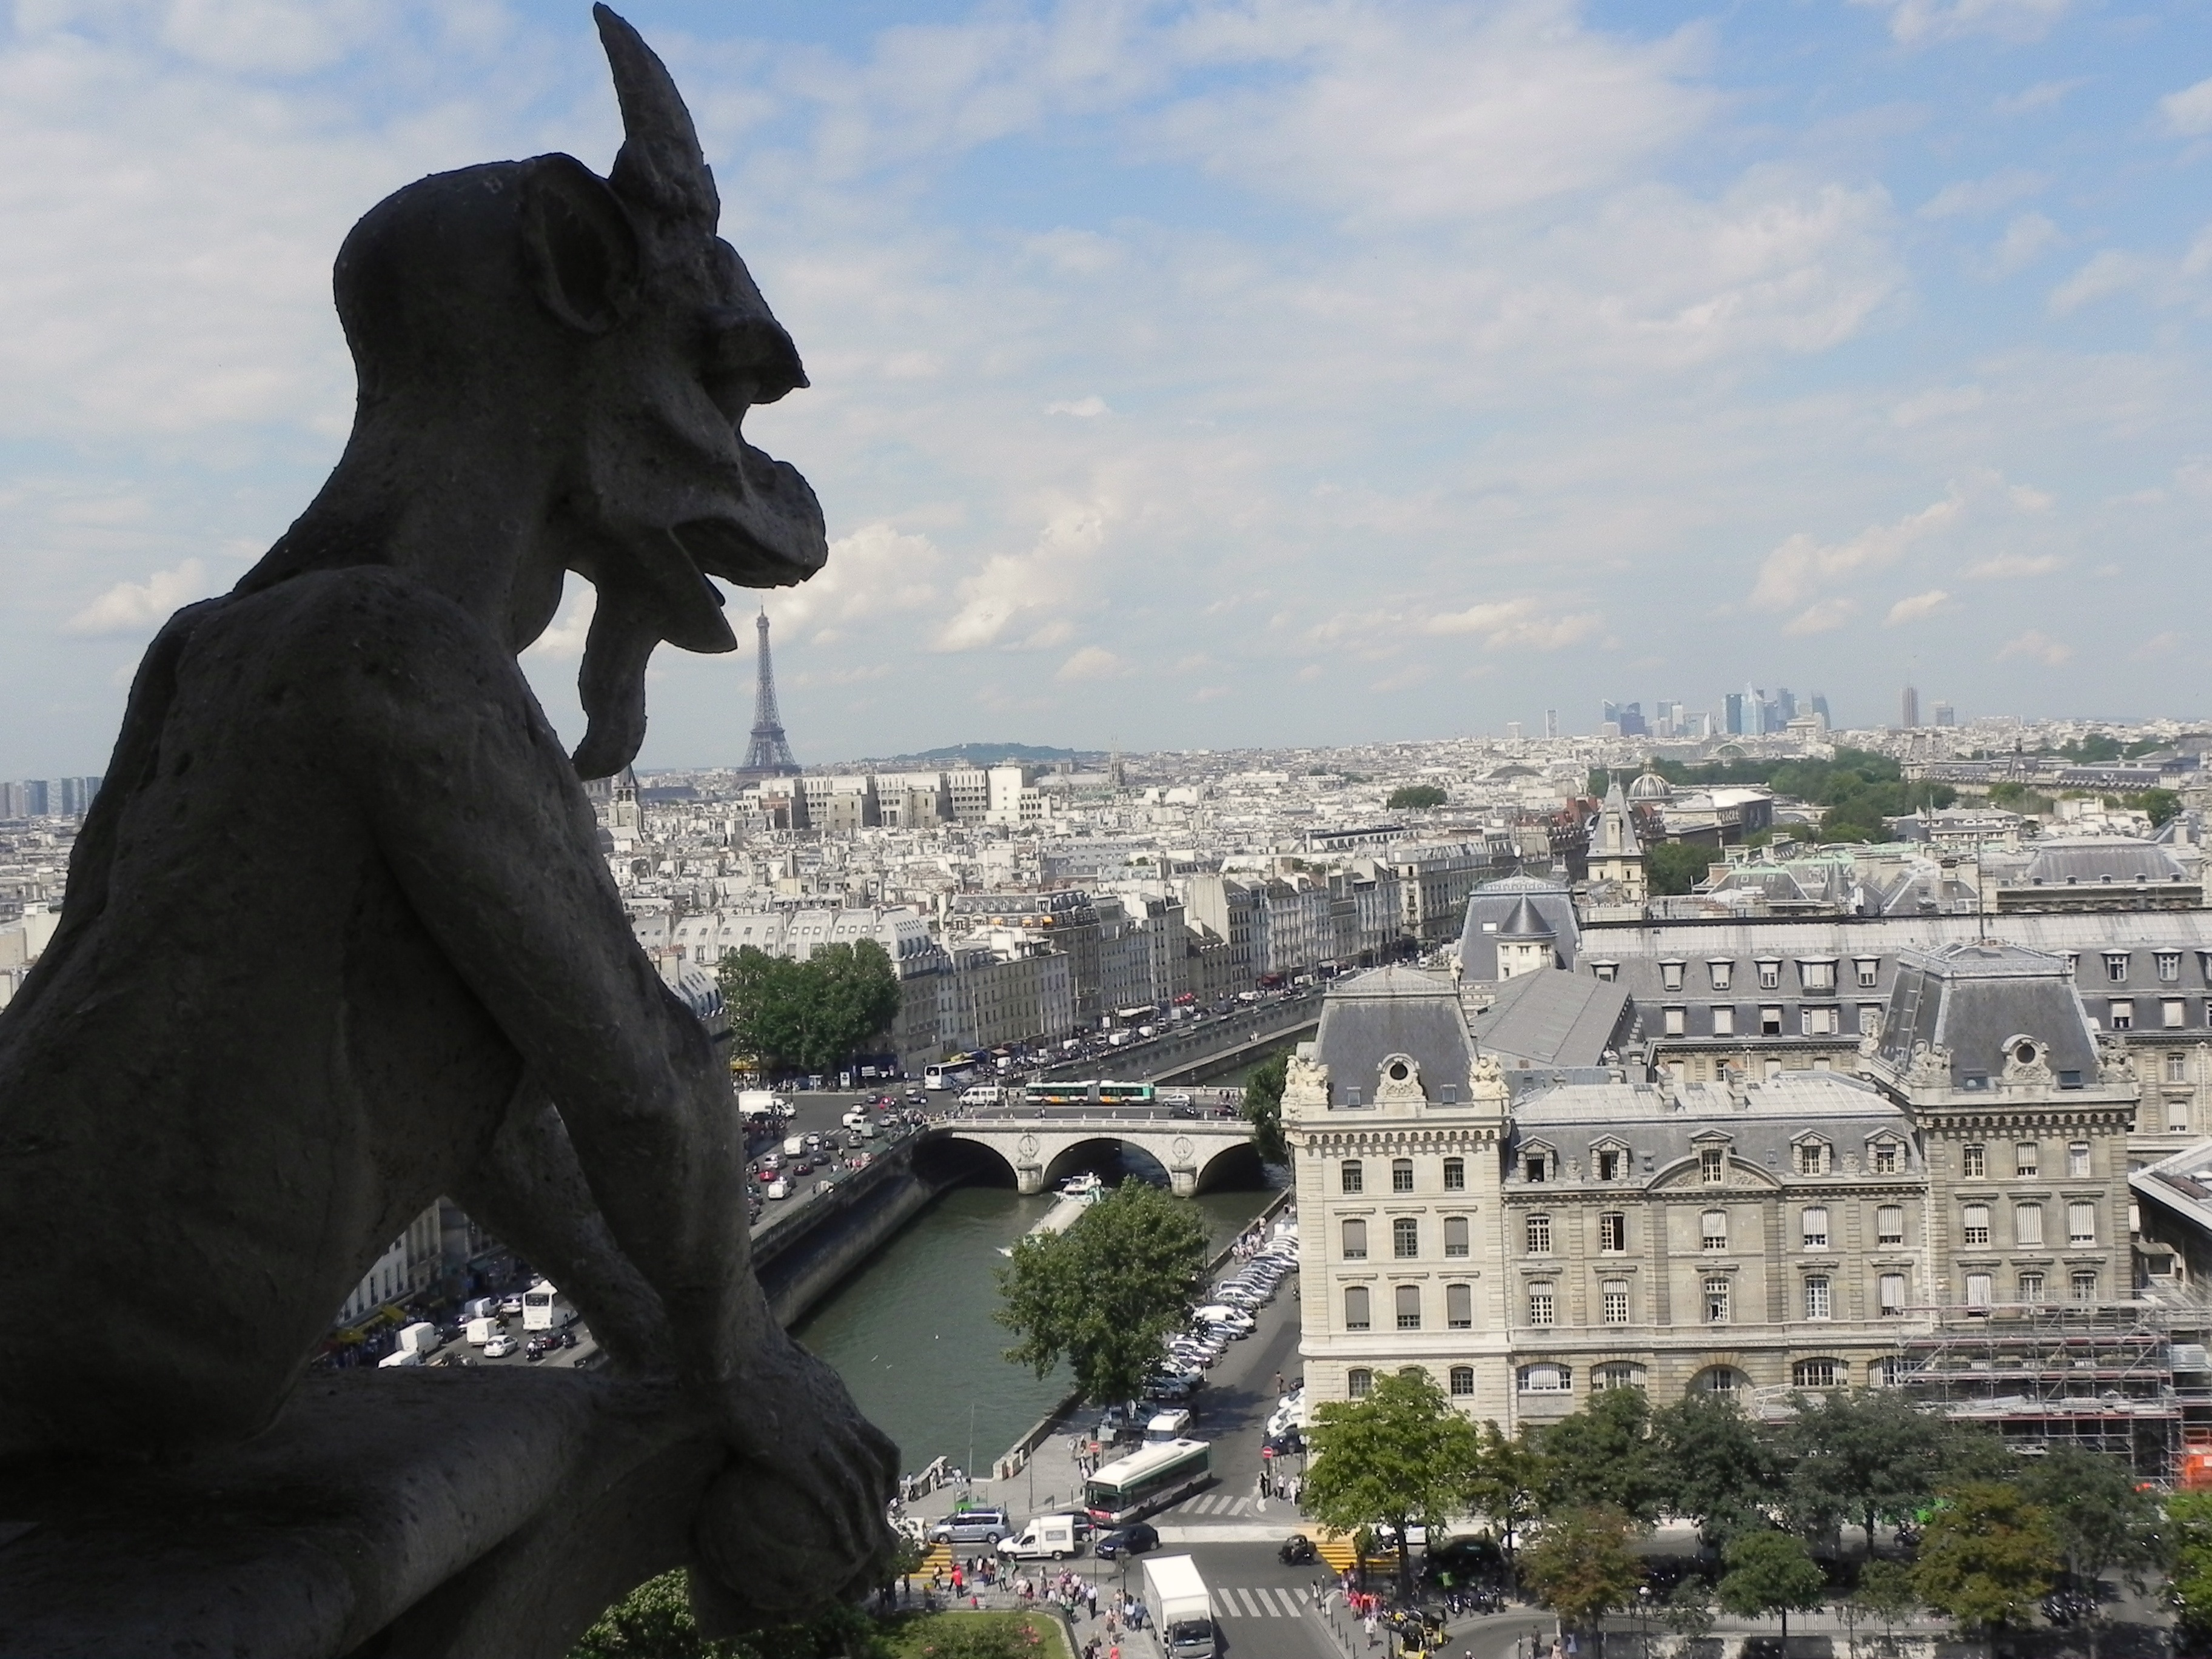 So just what's atop notre dame cathedral in paris